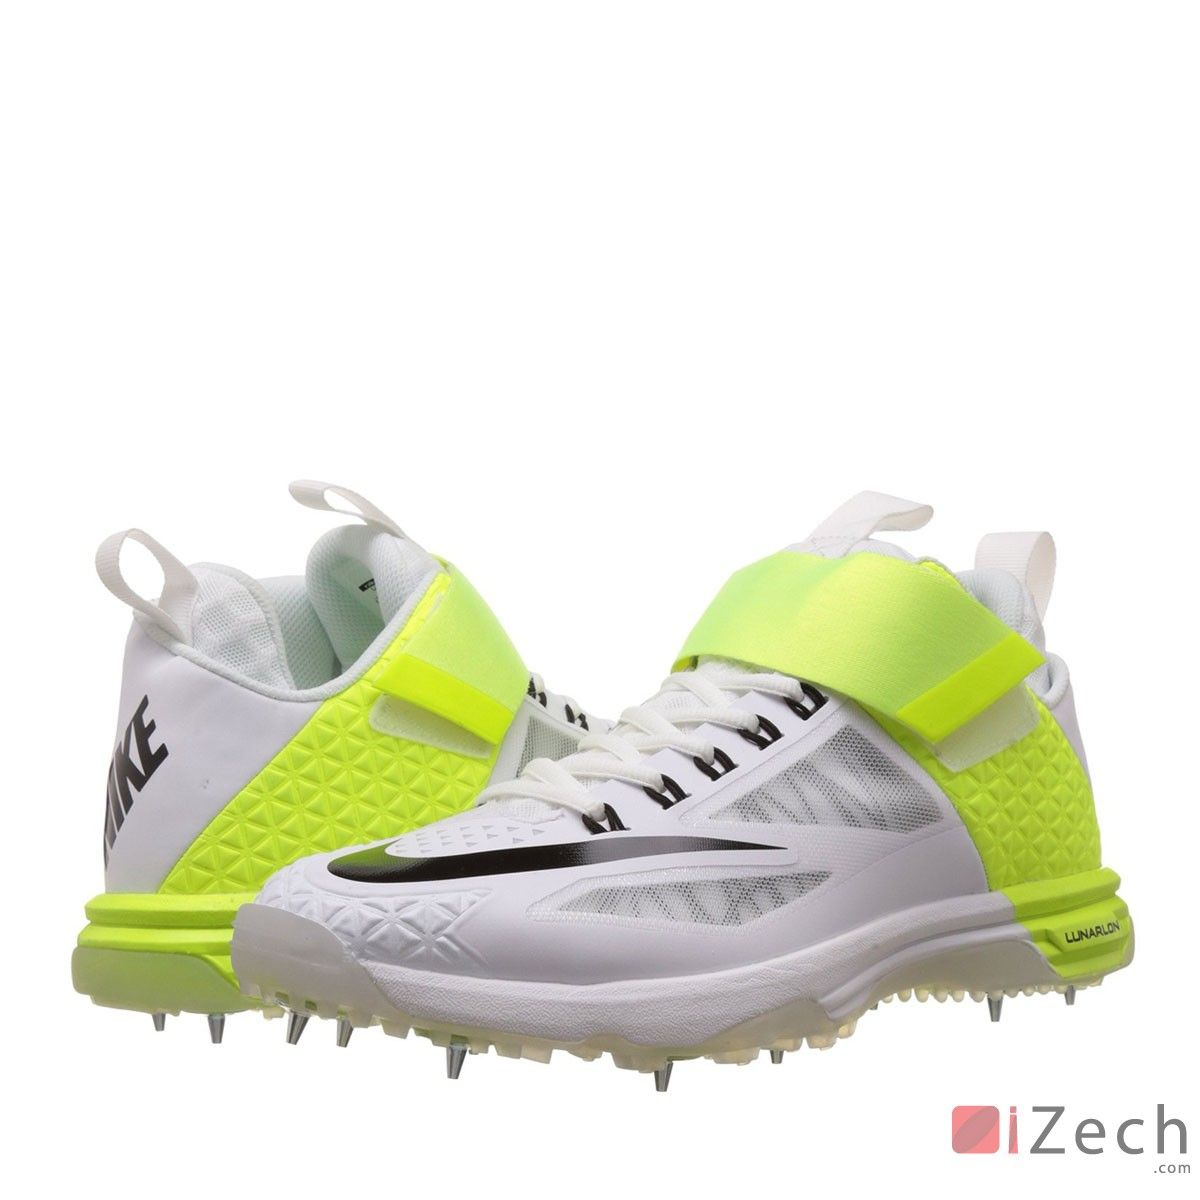 save off 402e3 39667 Nike Lunaraccelerate 2 White Cricket Shoes